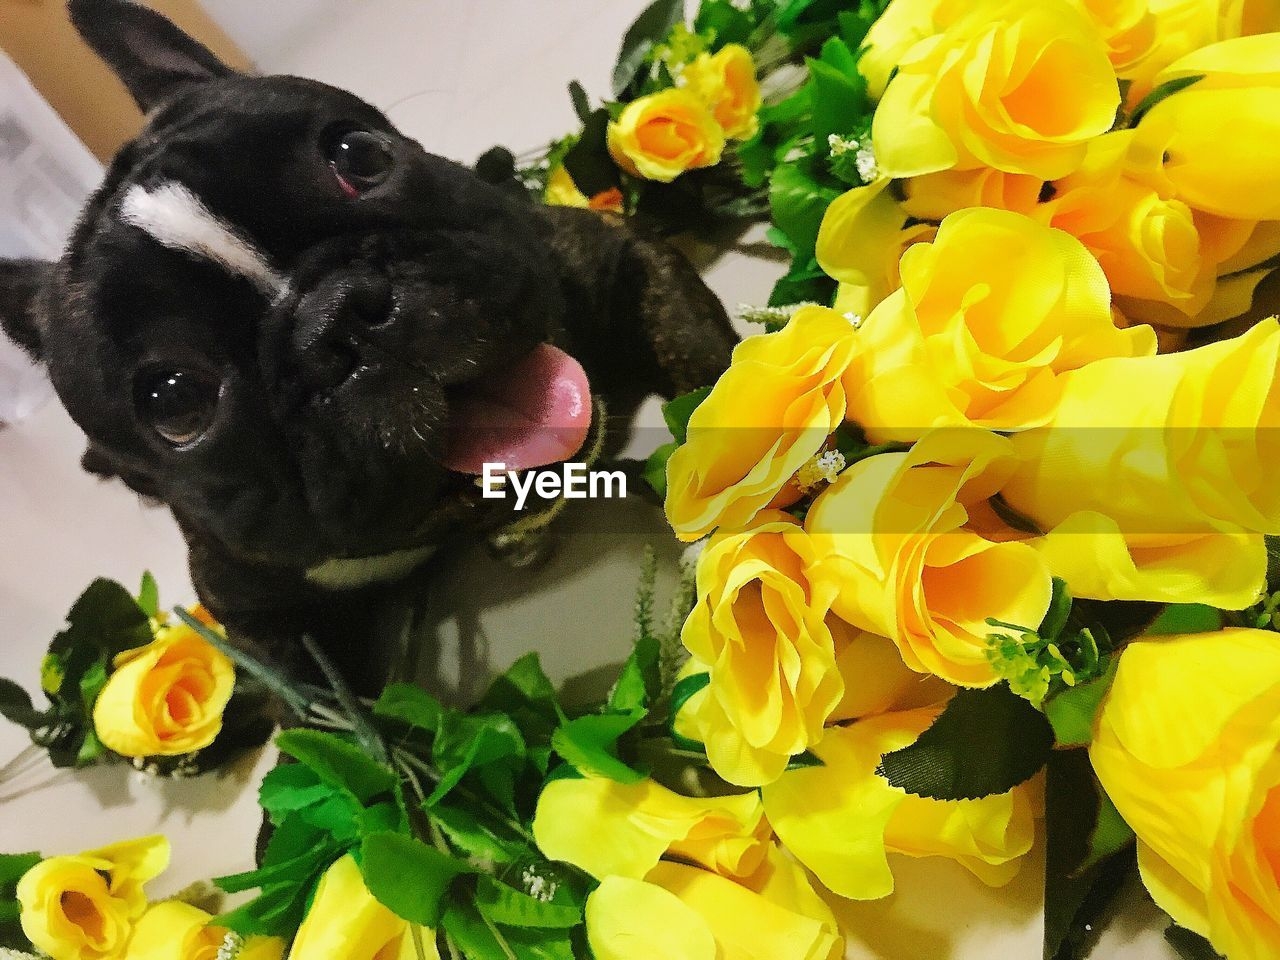 CLOSE-UP OF BLACK FLOWERS WITH YELLOW AND DOG